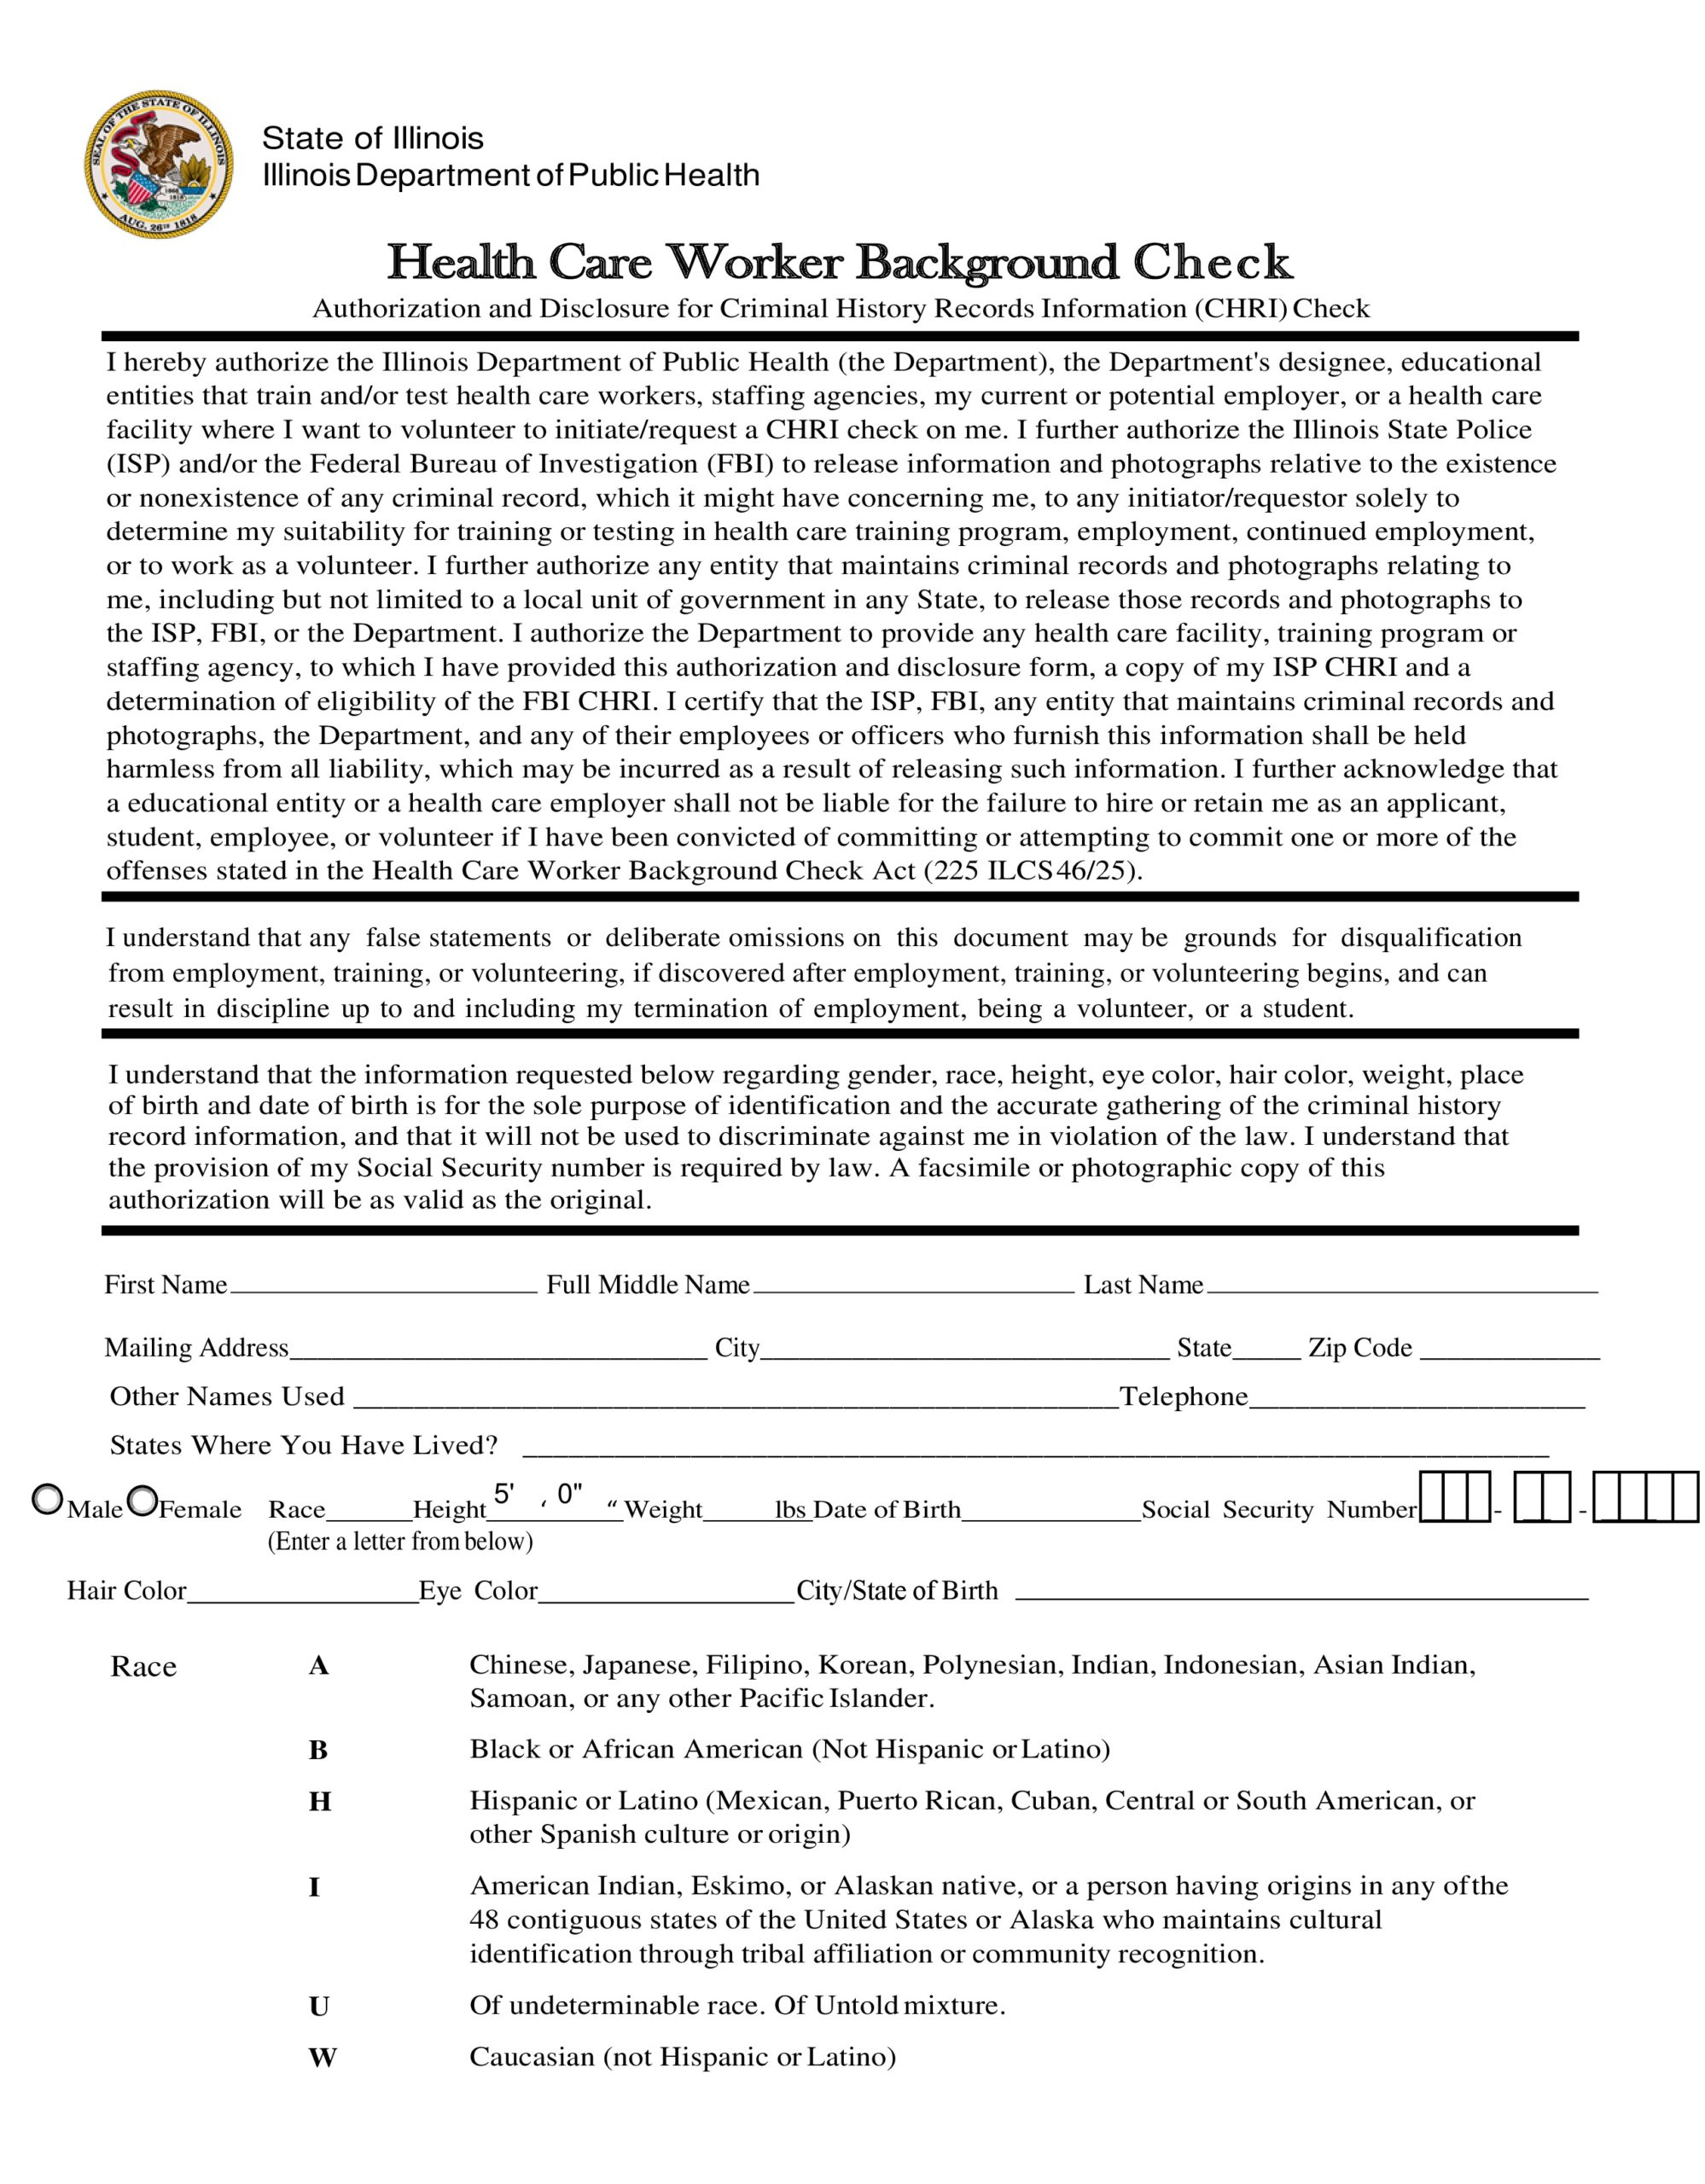 Free background check form 23